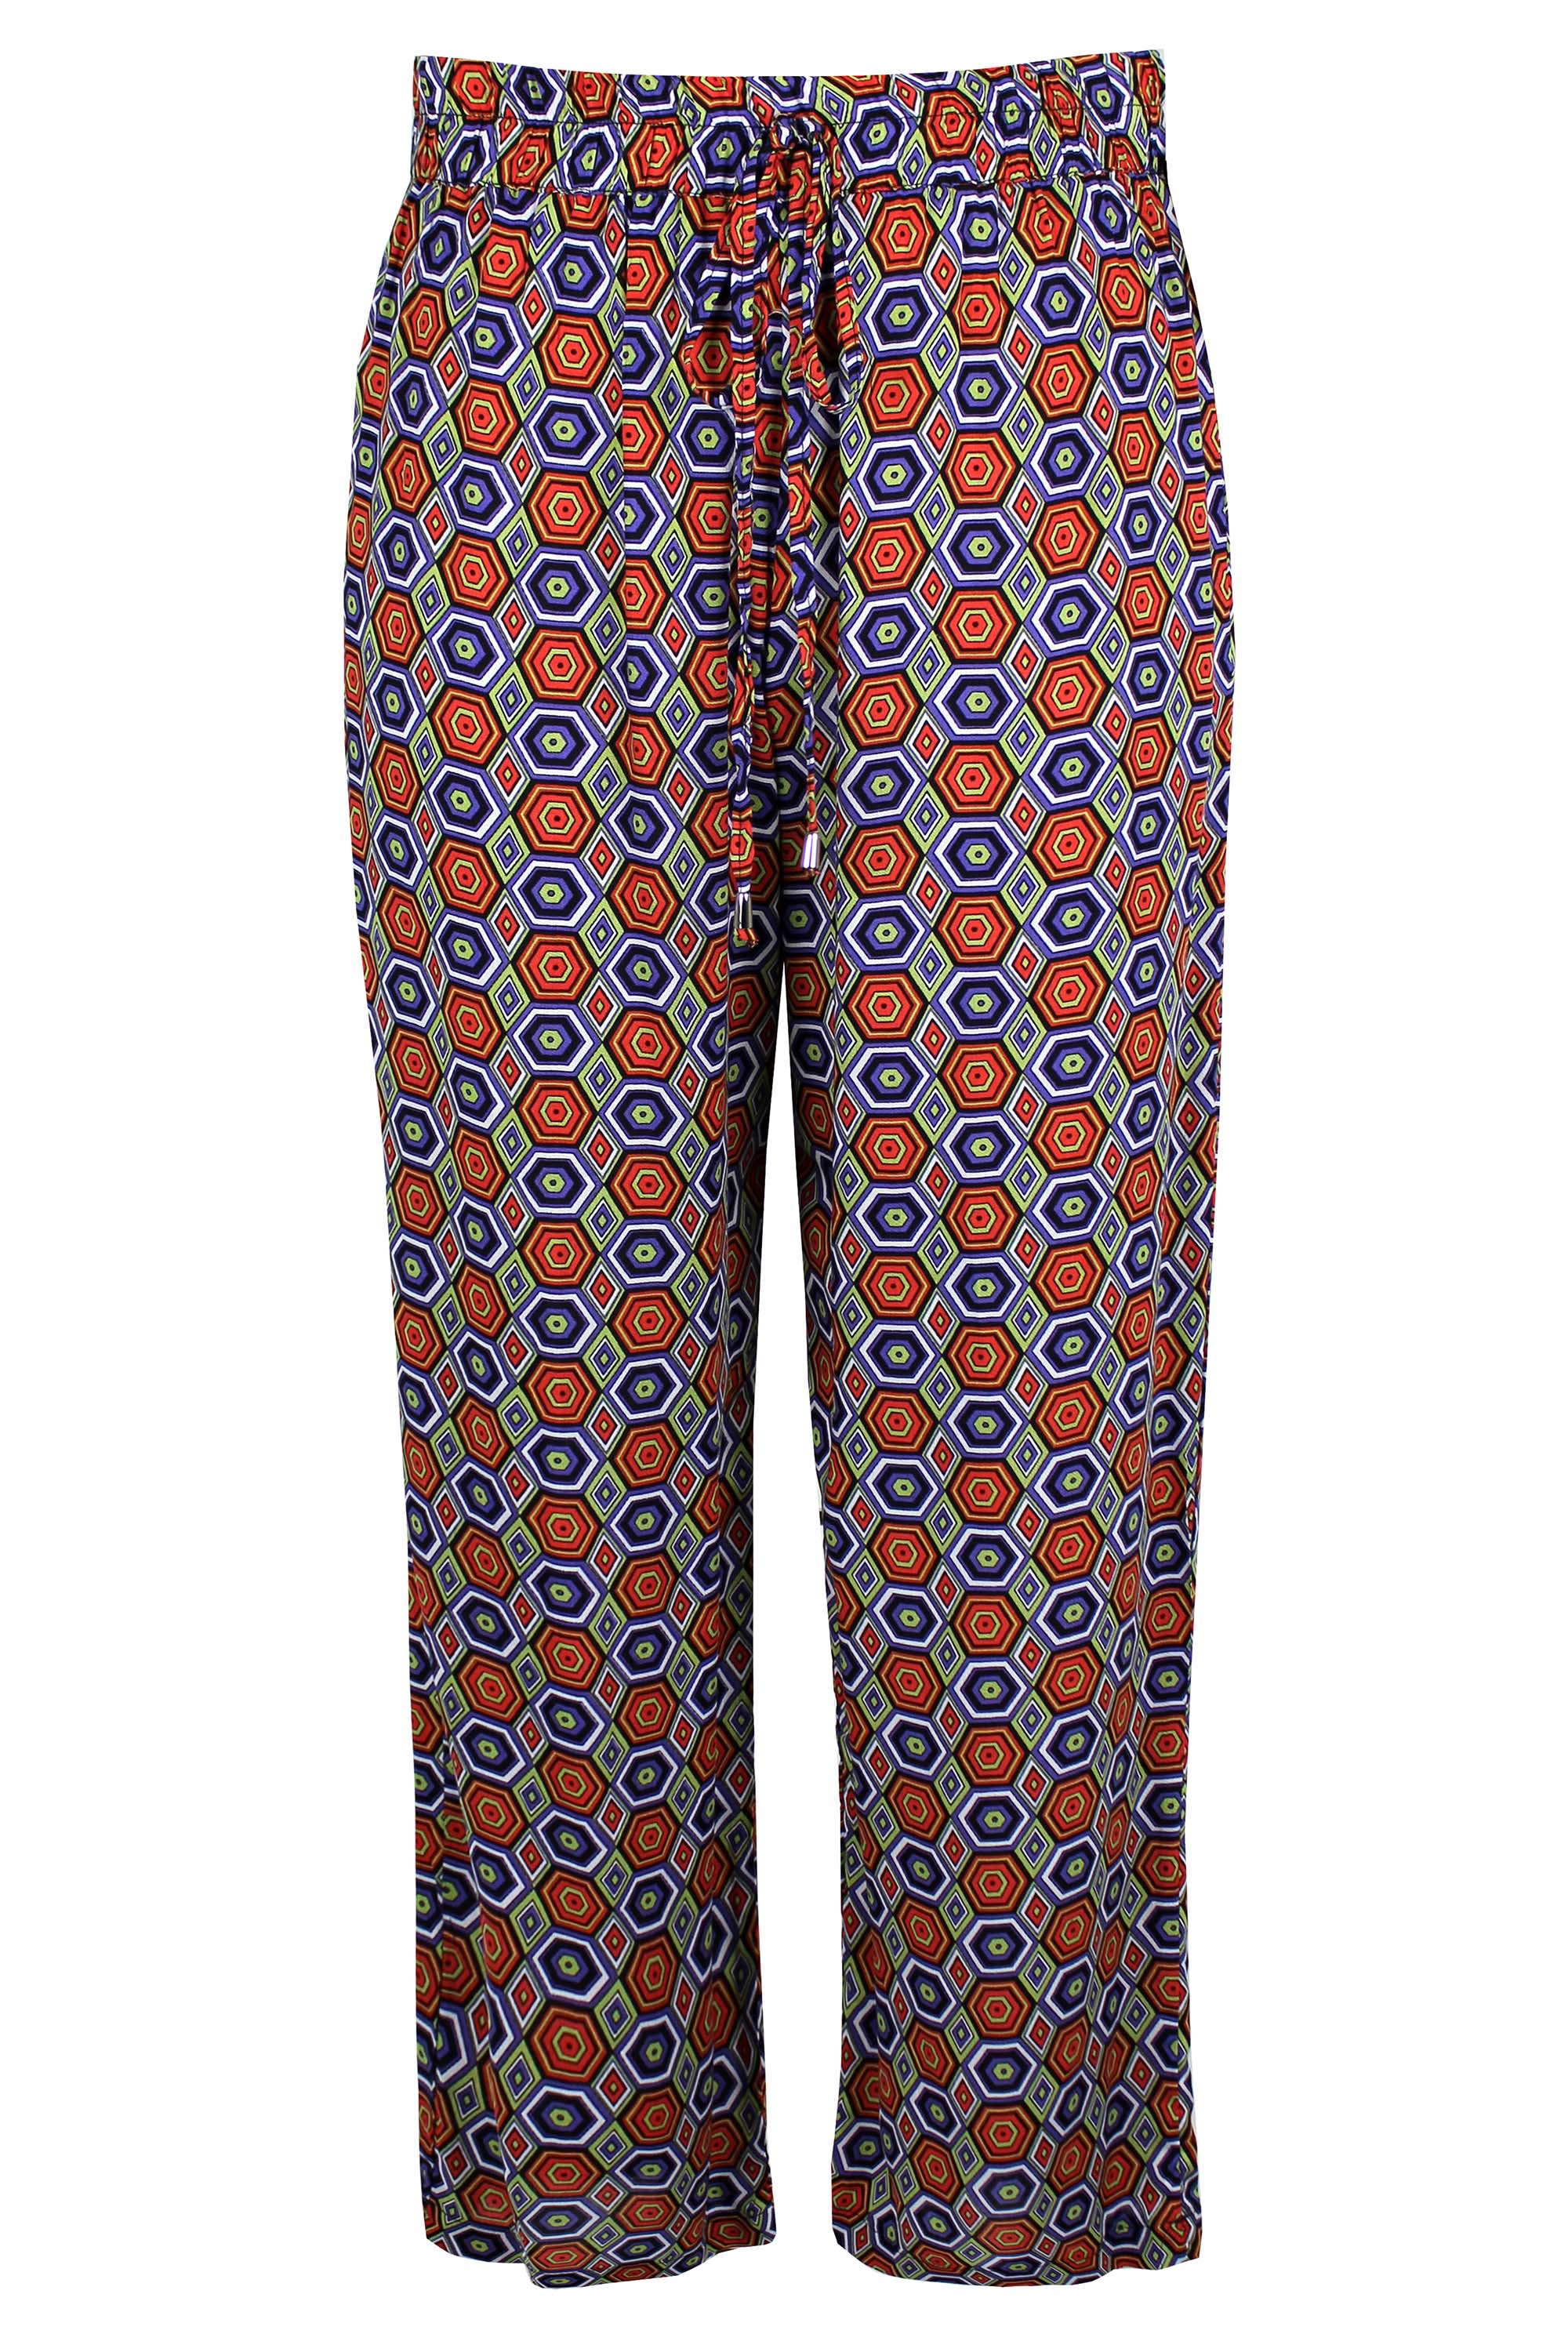 Stylish Mid-Waisted Printed Loose-Fitting Women's Exumas Pants (41% OFF) (1) I like these pants because they are so colorful and you can change the look by w.